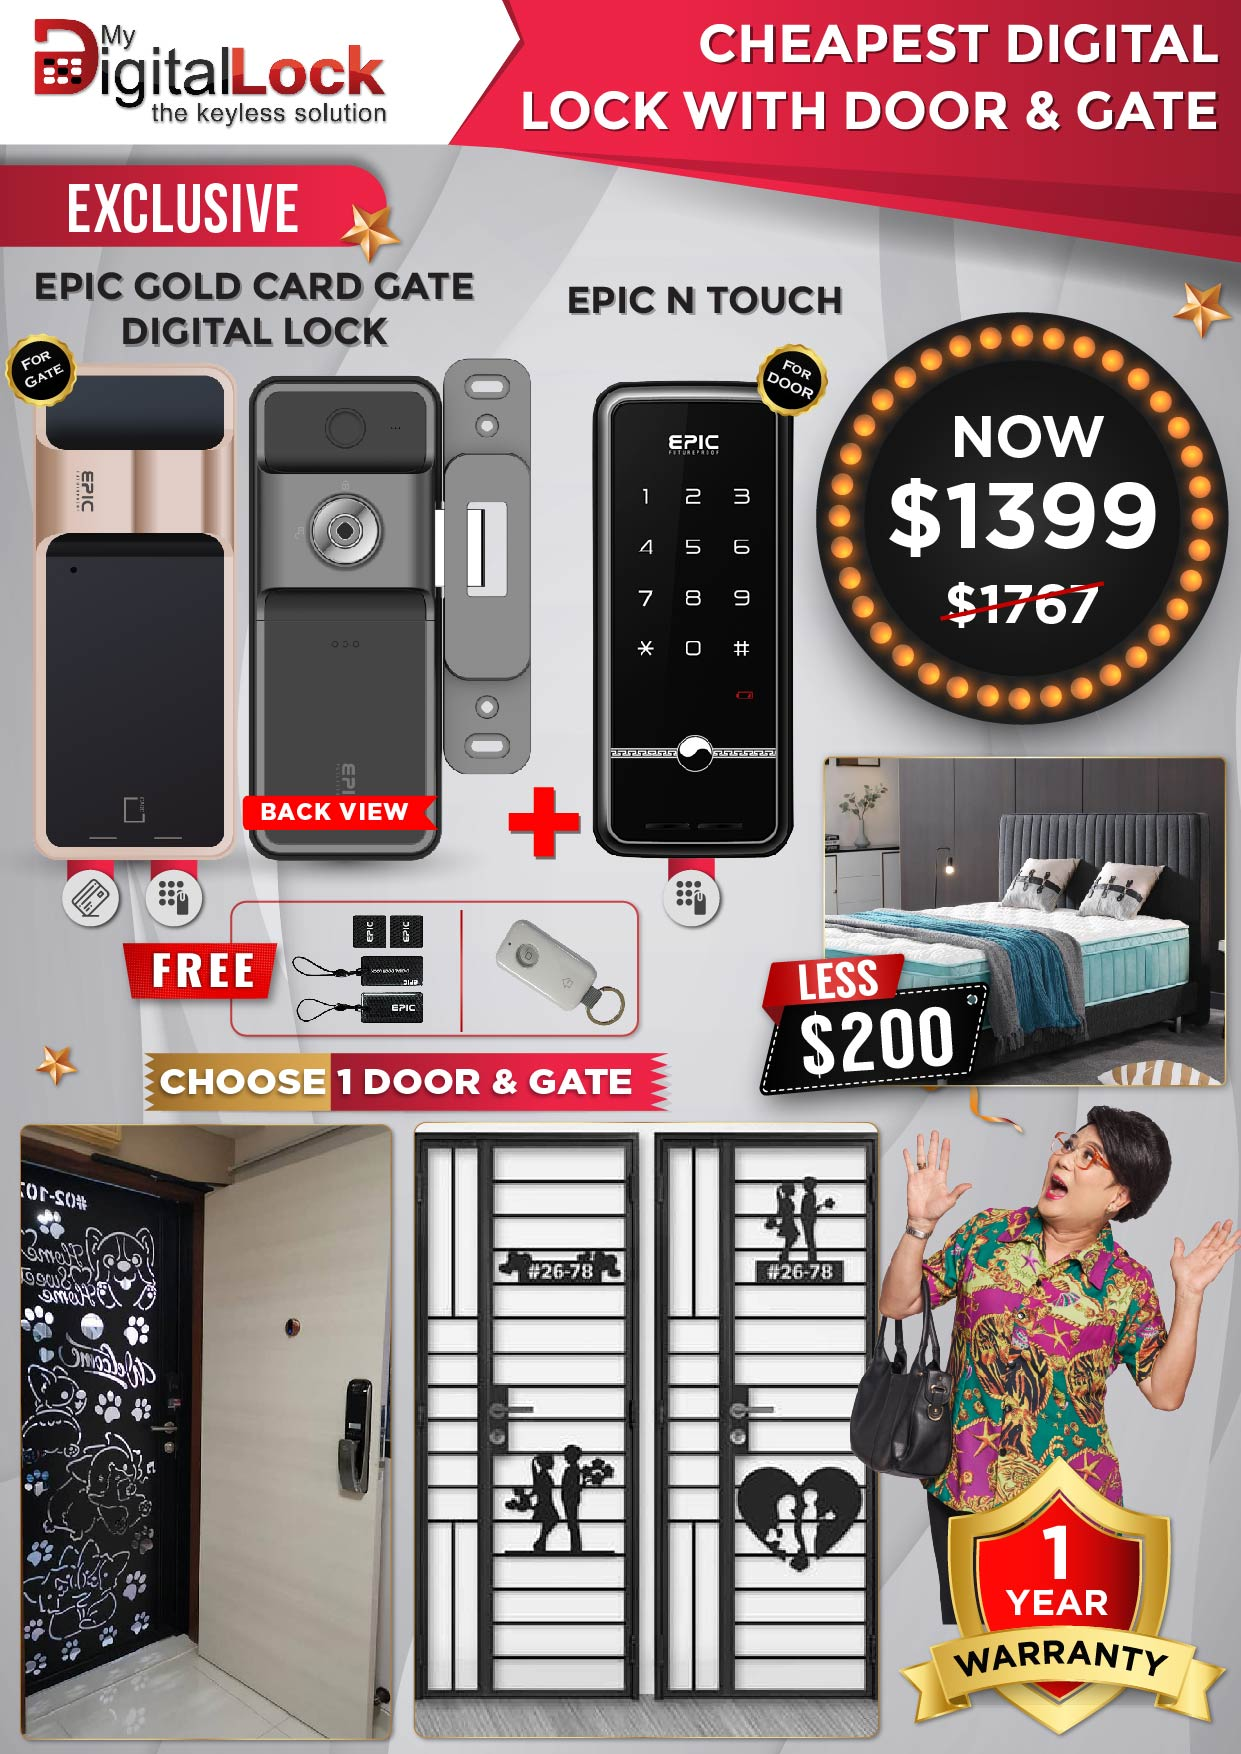 EPIC-Gold-Card-Gate-and-N-Touch-Digital-Lock-with-Door-and-Gate-10